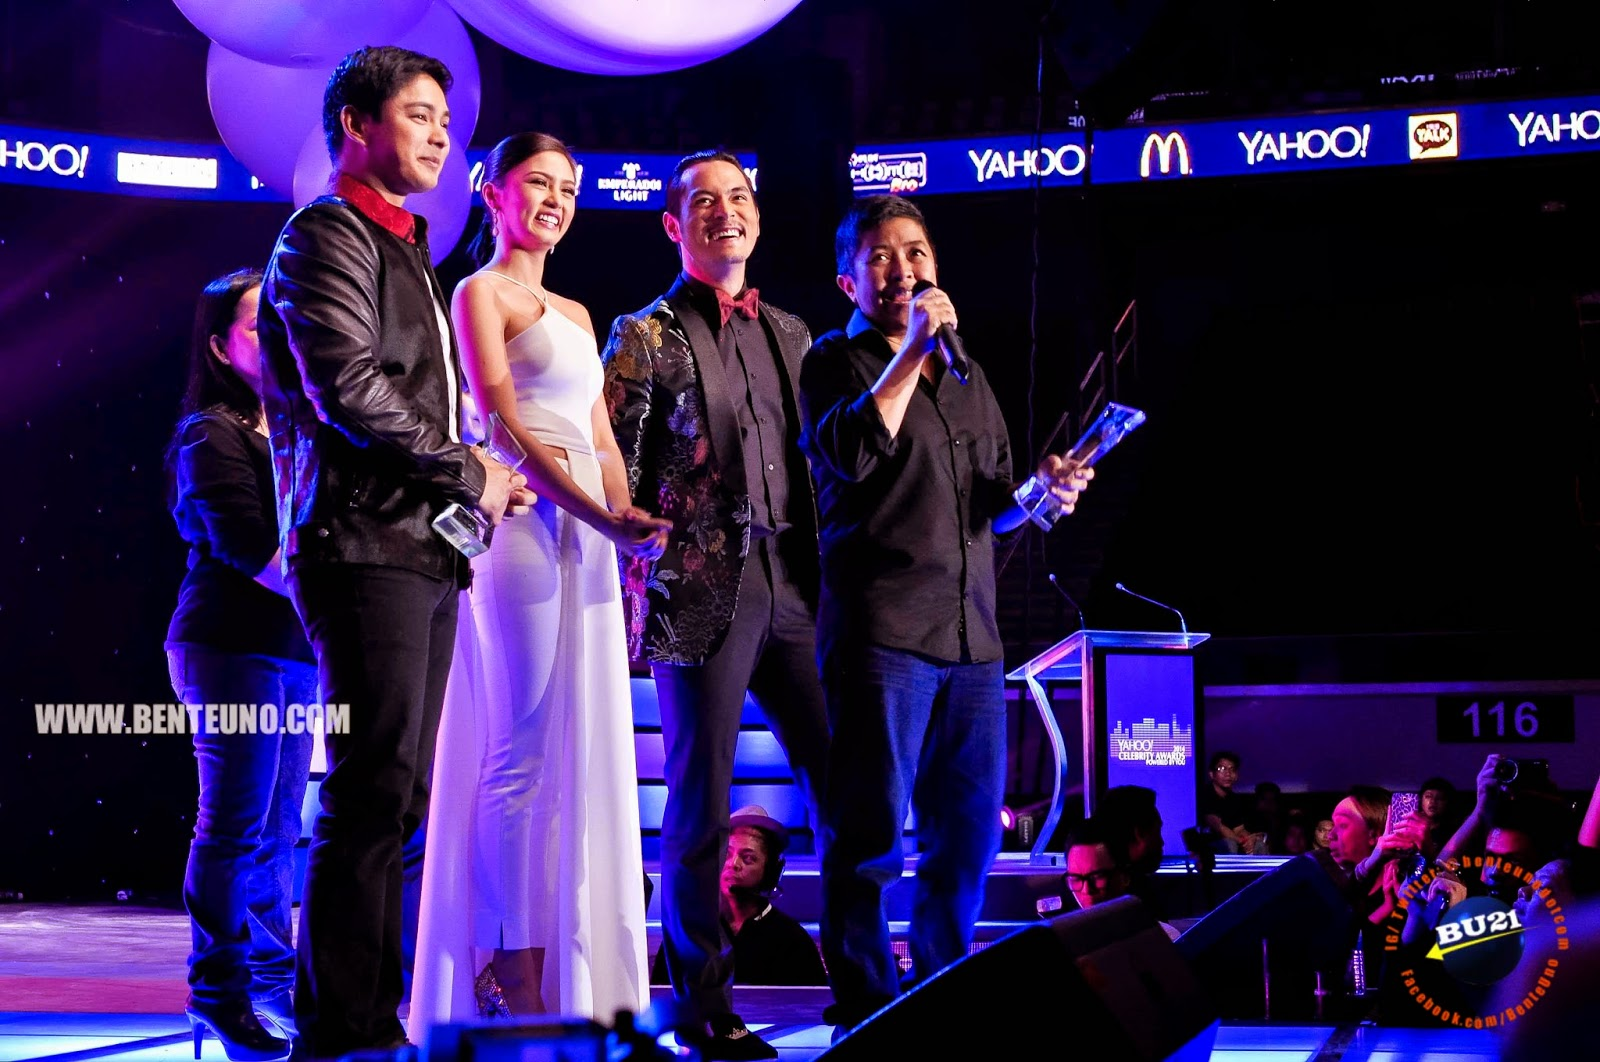 Ikaw Lamang named Teleserye of the Year at the Yahoo Celebrity Awards 2014